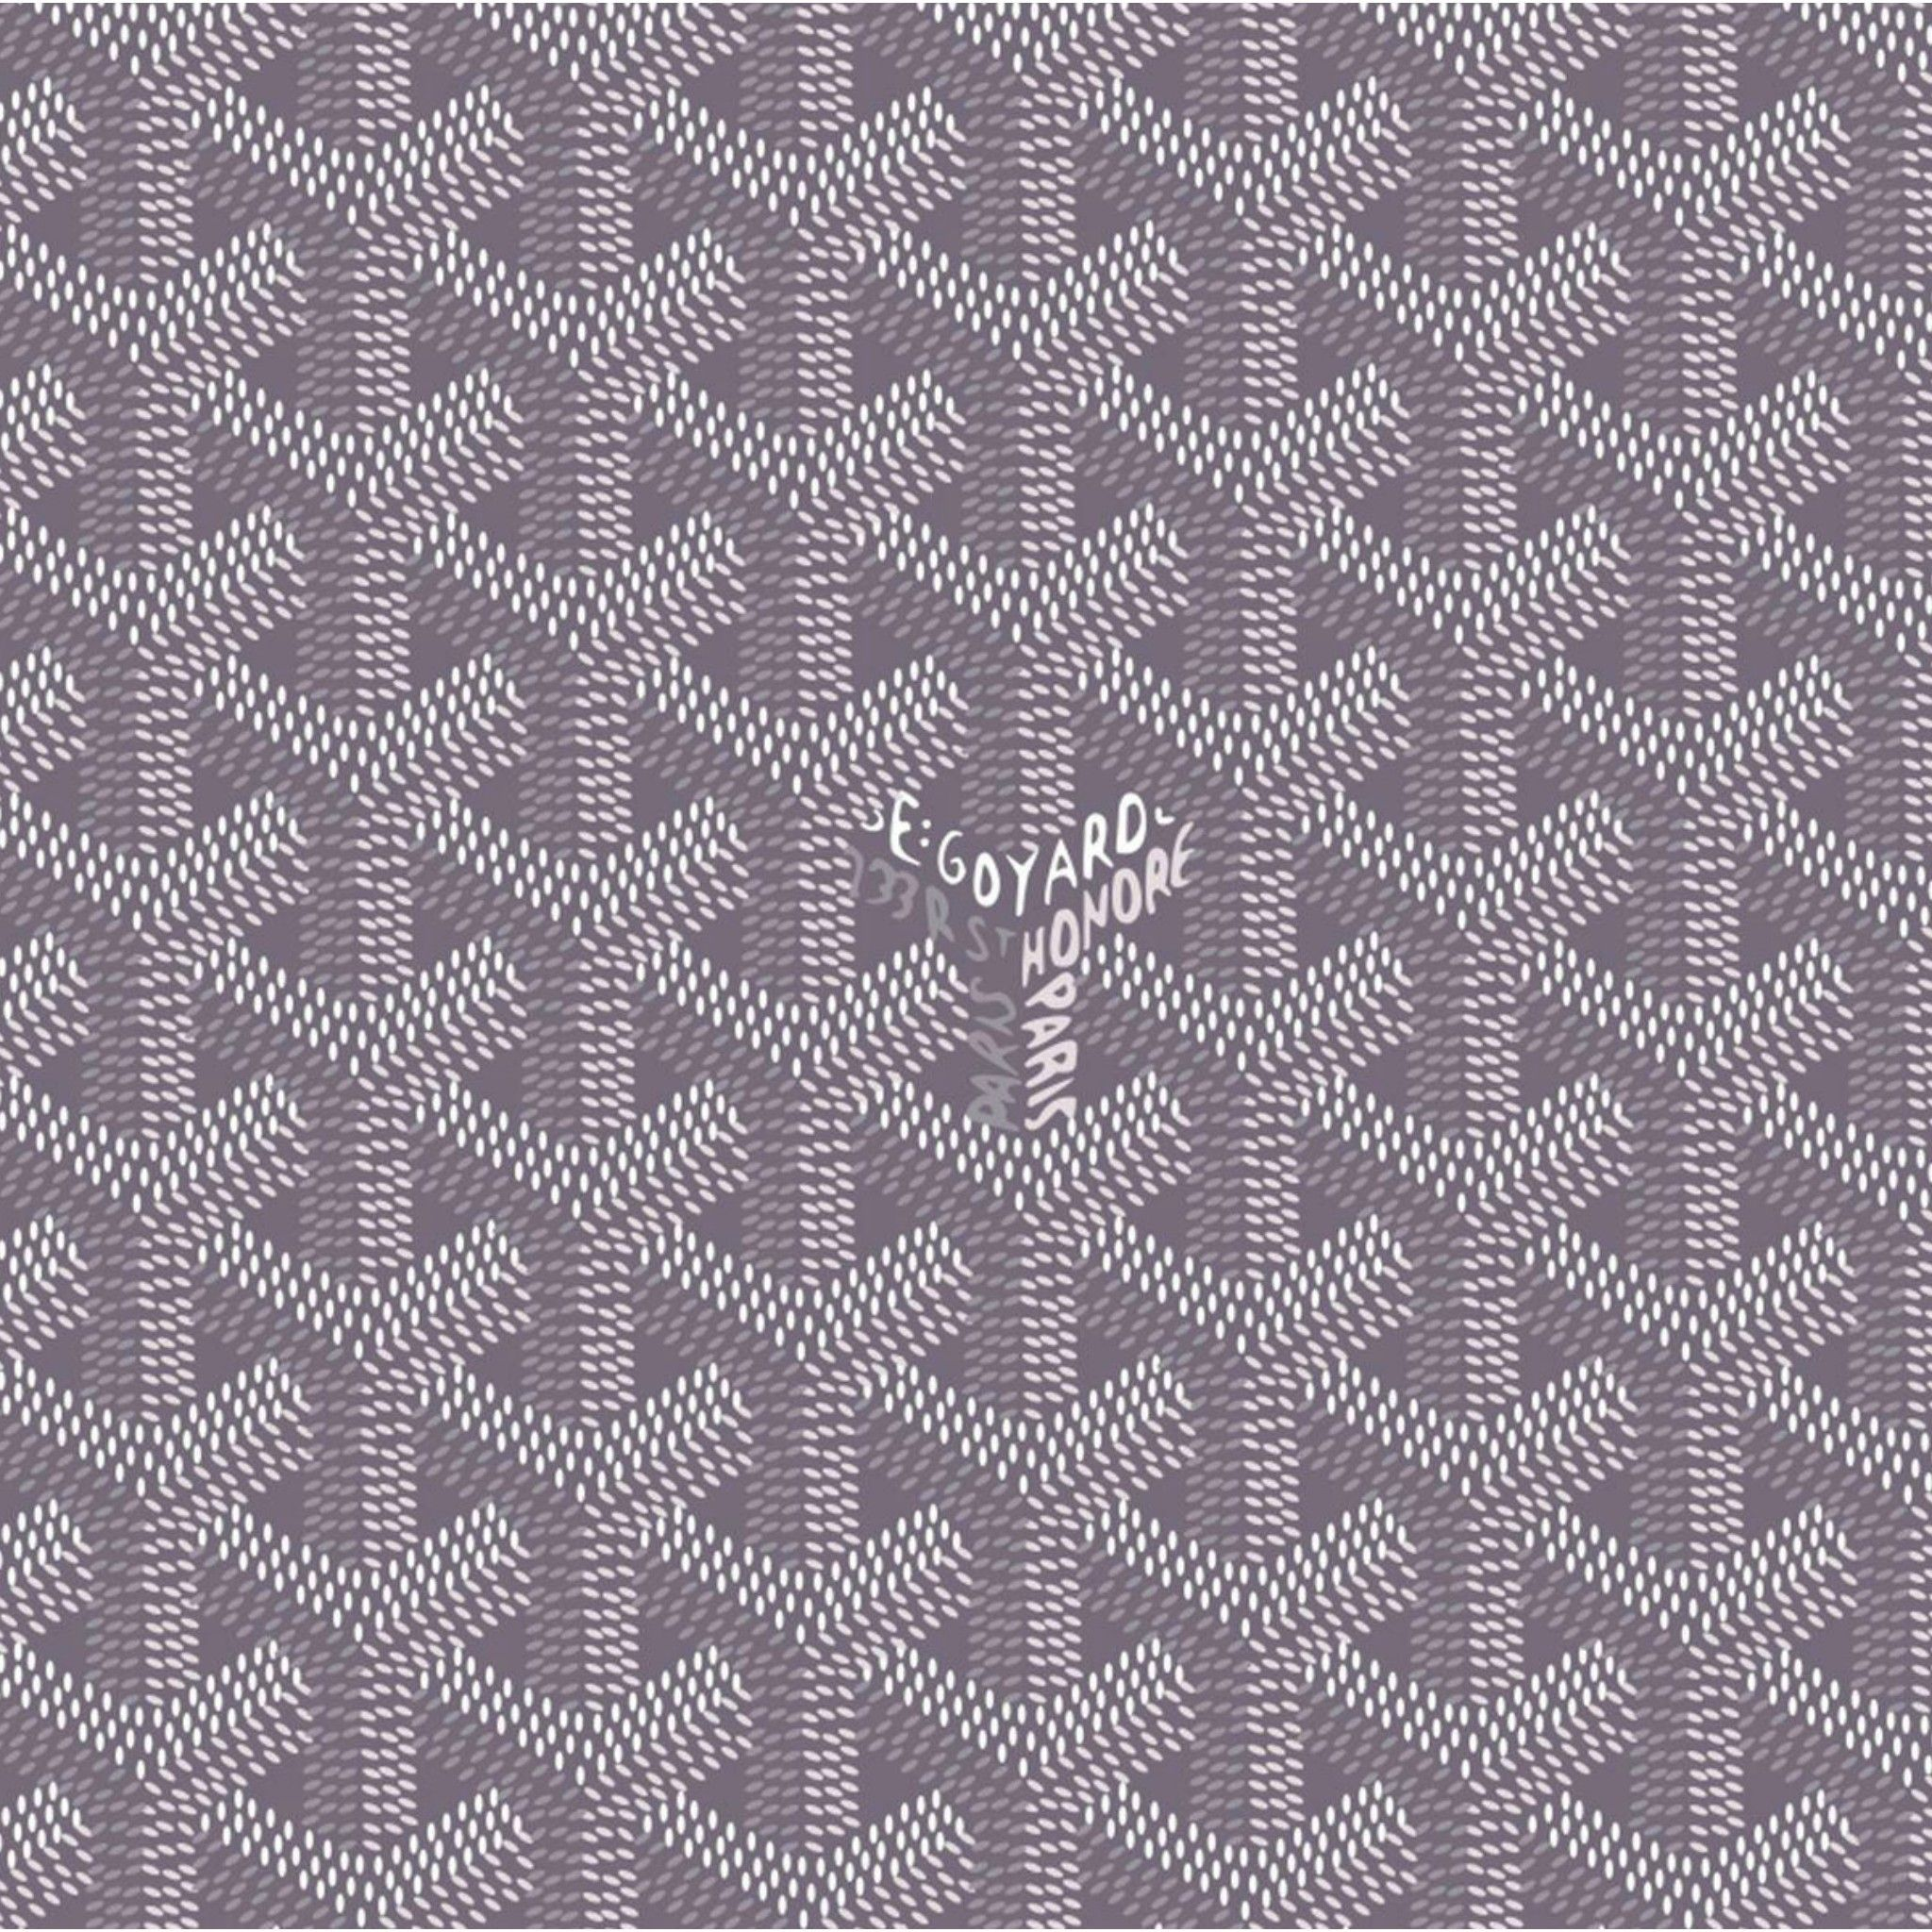 2048x2048 Goyard Design - Tap to see more goyard wallpapers! - @mobile9 | iPad ...